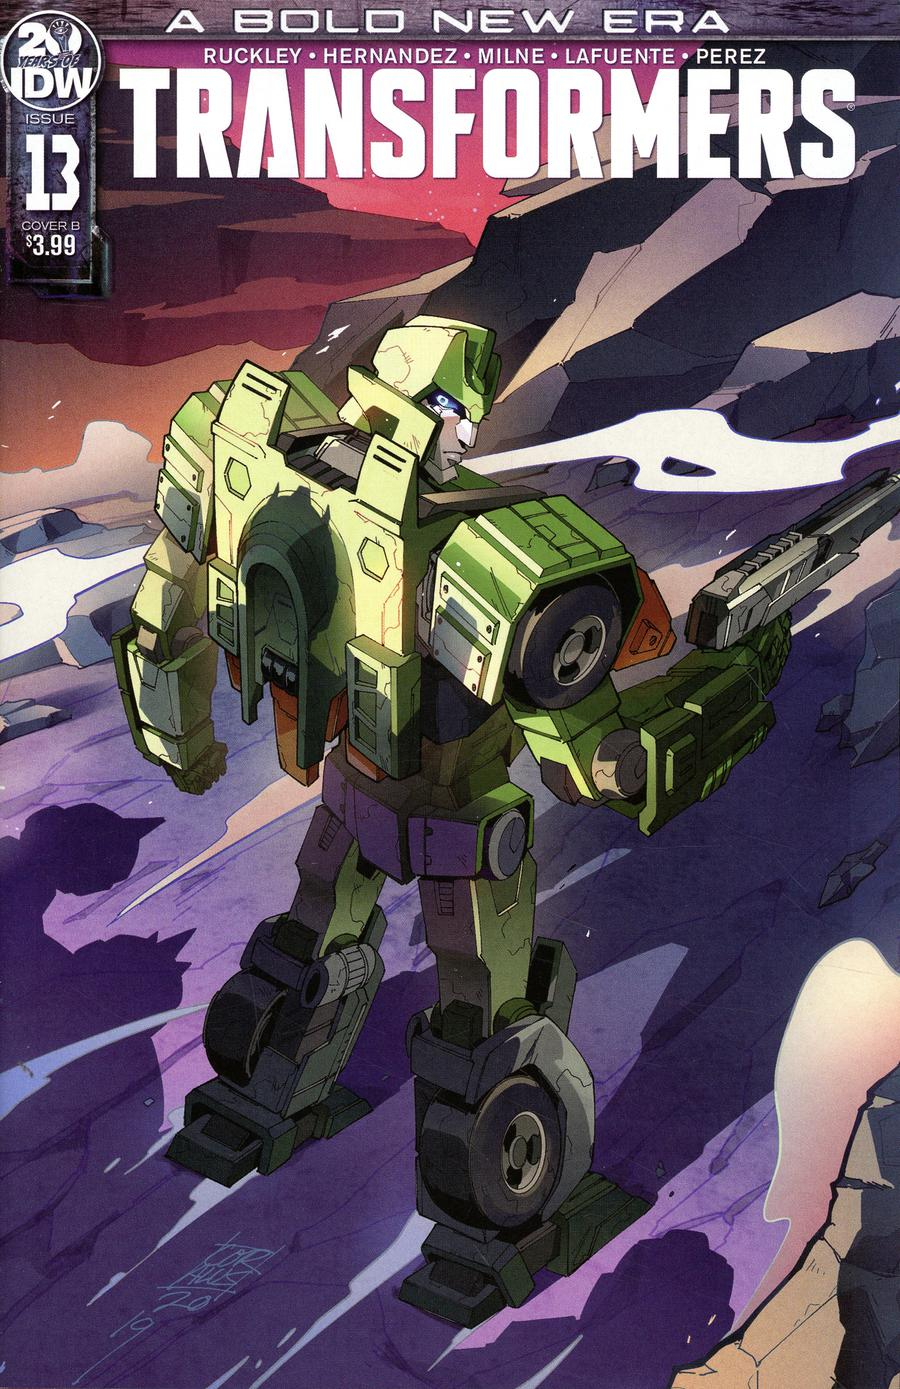 Transformers Vol 4 #13 Cover B Variant Umi Miyao Cover